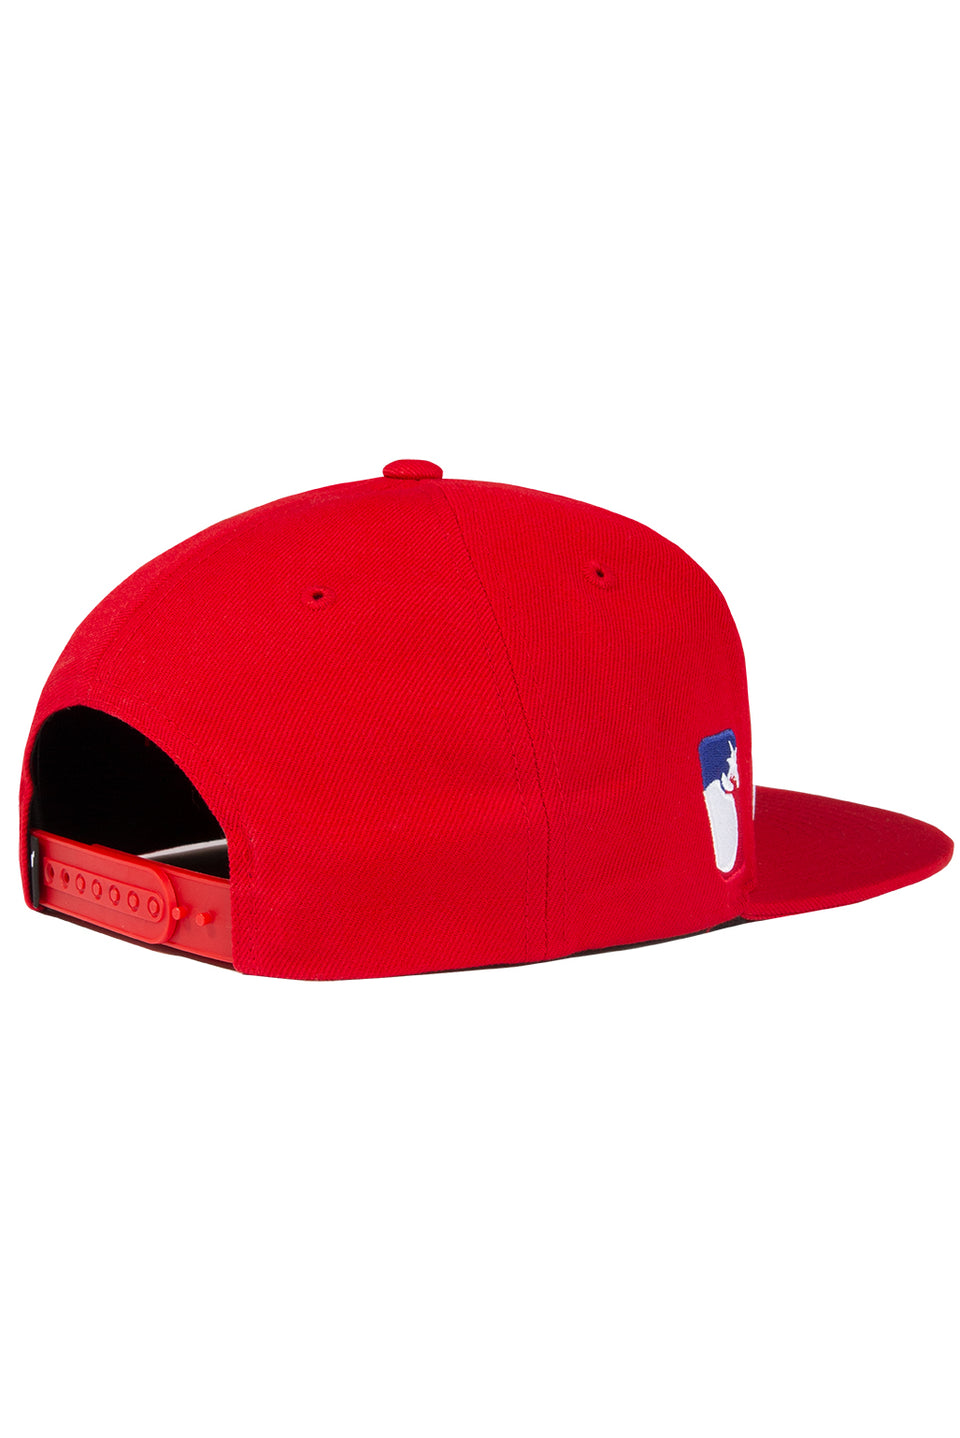 Forever Team Snapback – The Hundreds f803dcc57c45